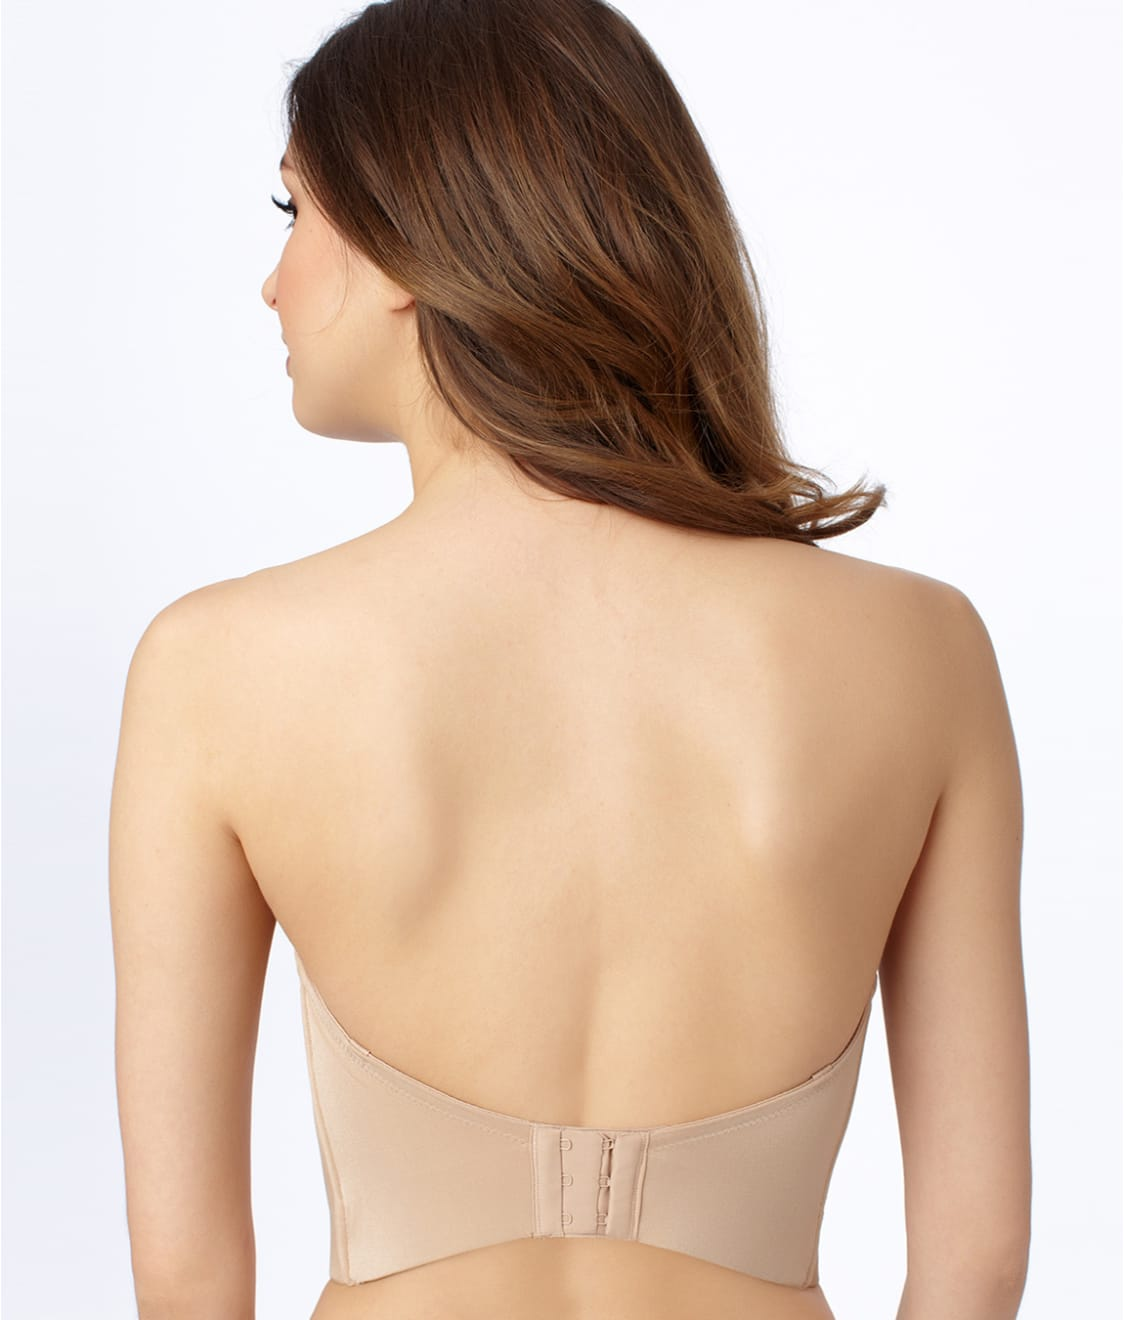 Le Mystère Soiree Low Back Bustier Bra 4556 at BareNecessities.com